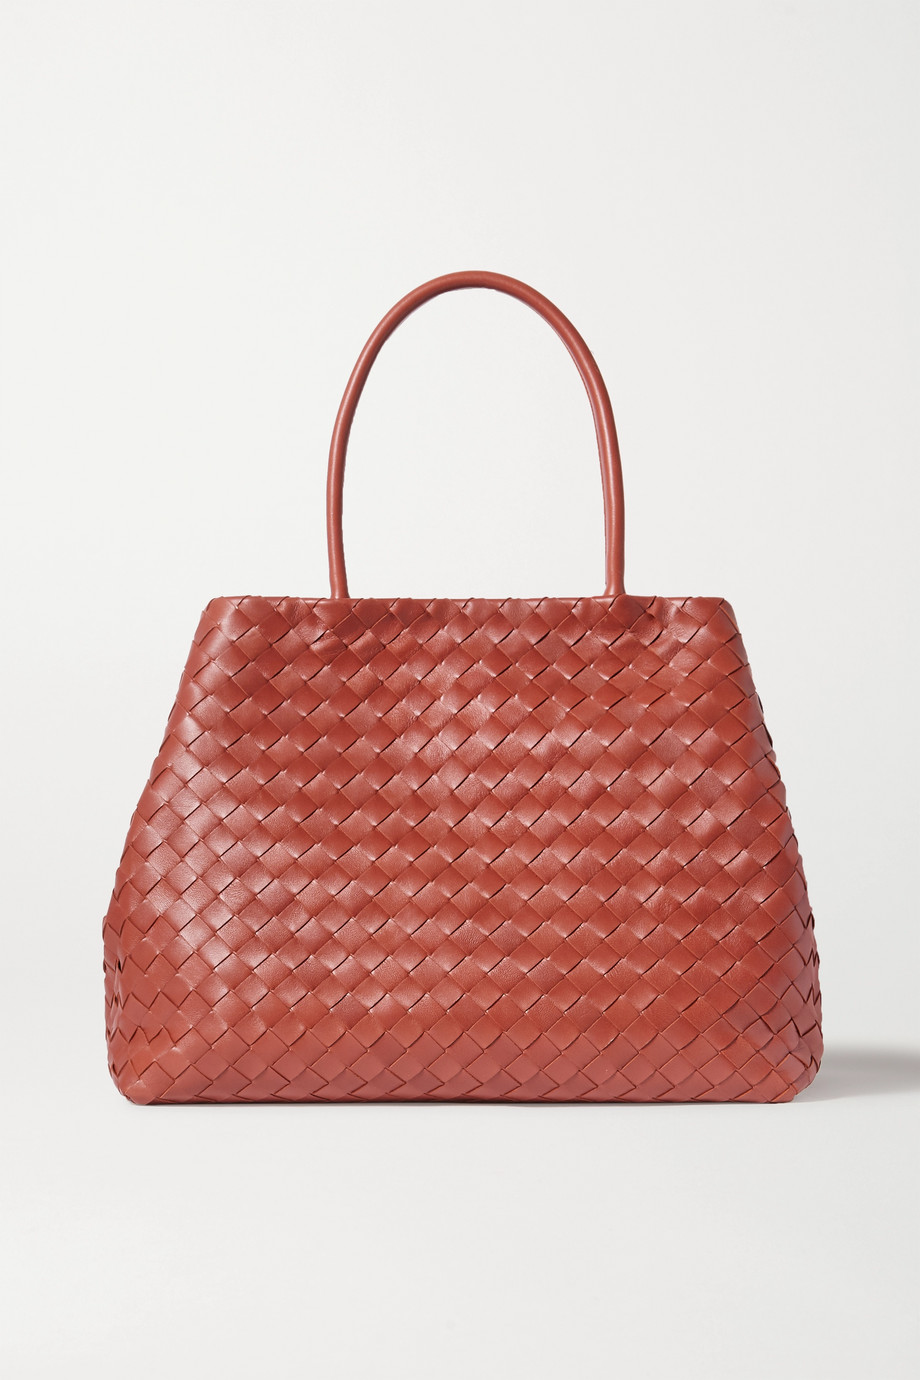 Bottega Veneta Cabas large intrecciato leather tote